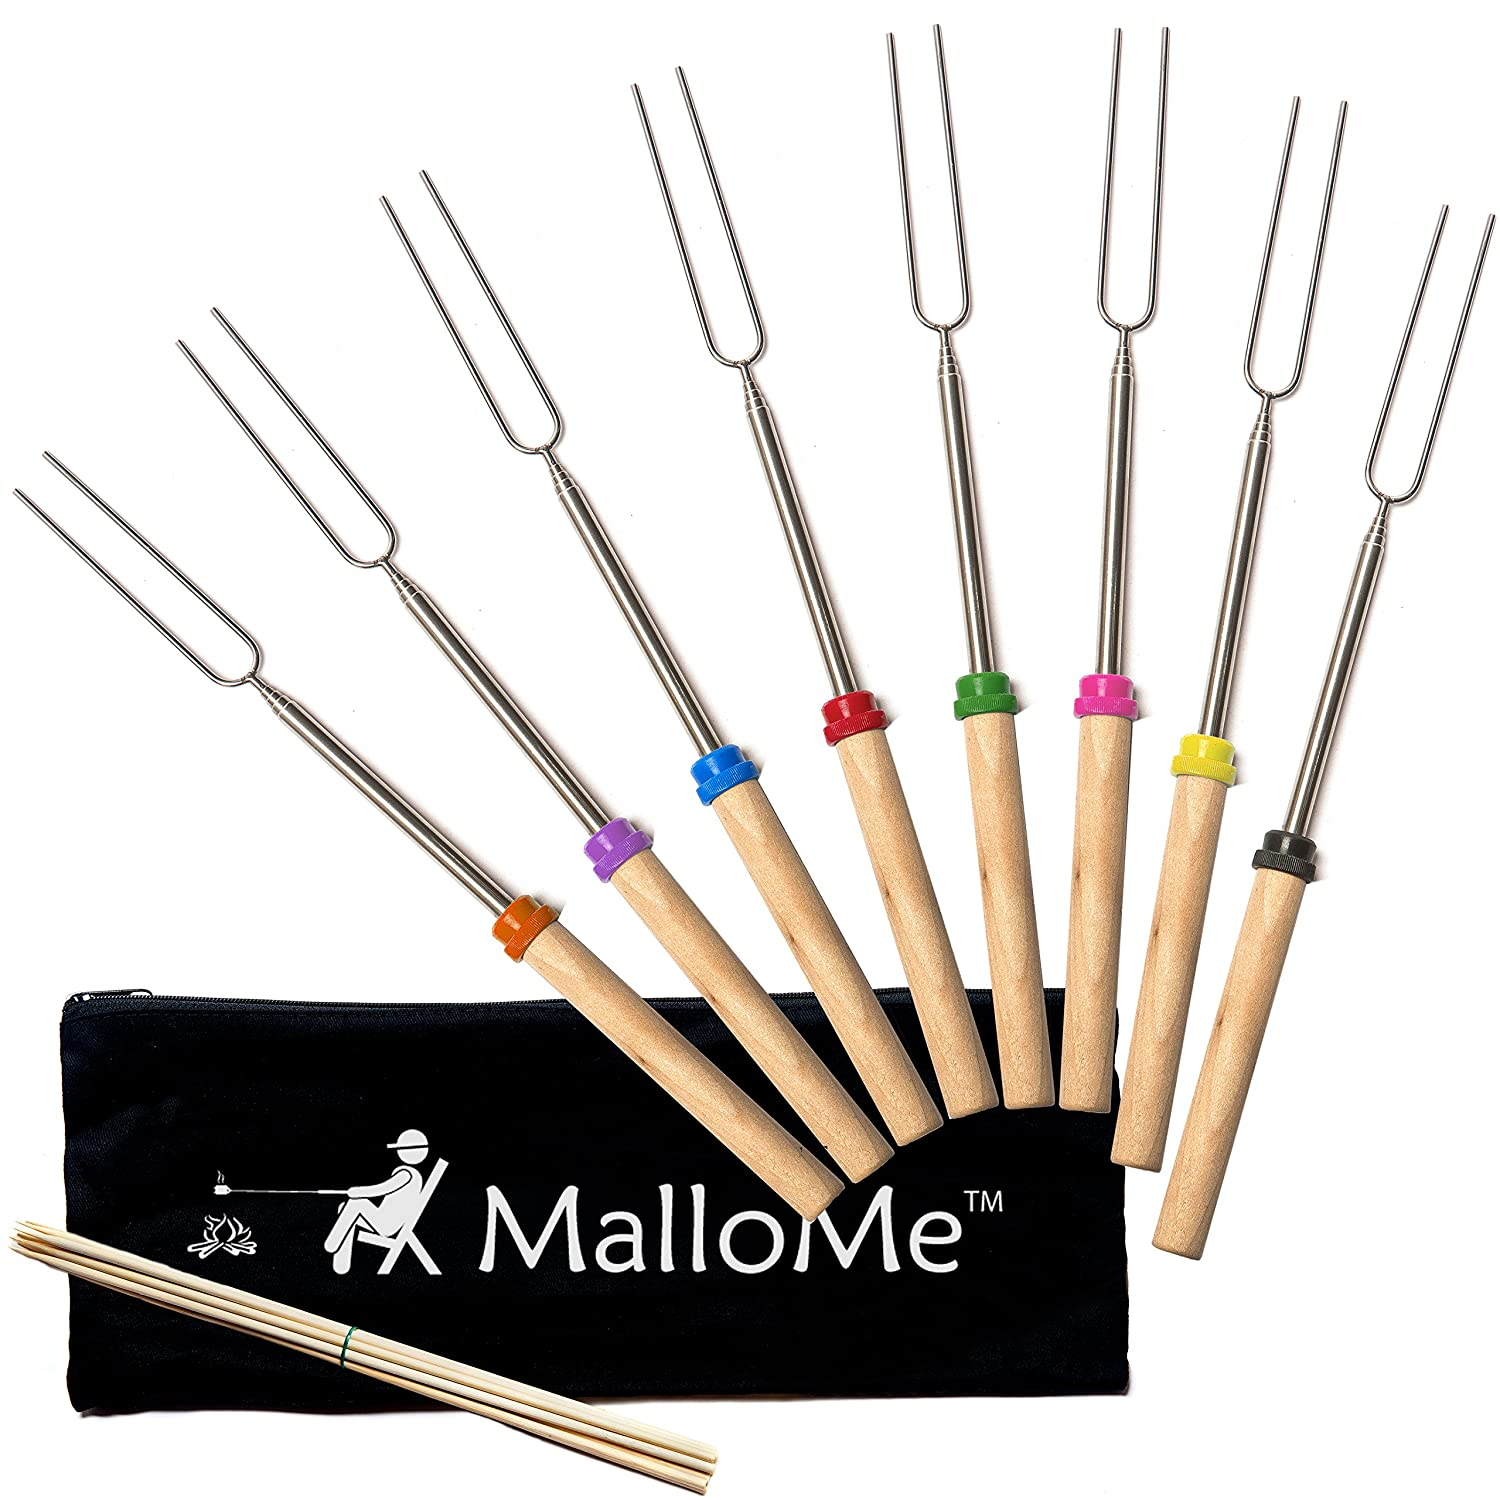 MalloMe 10-Piece Marshmallow Roasting Stick